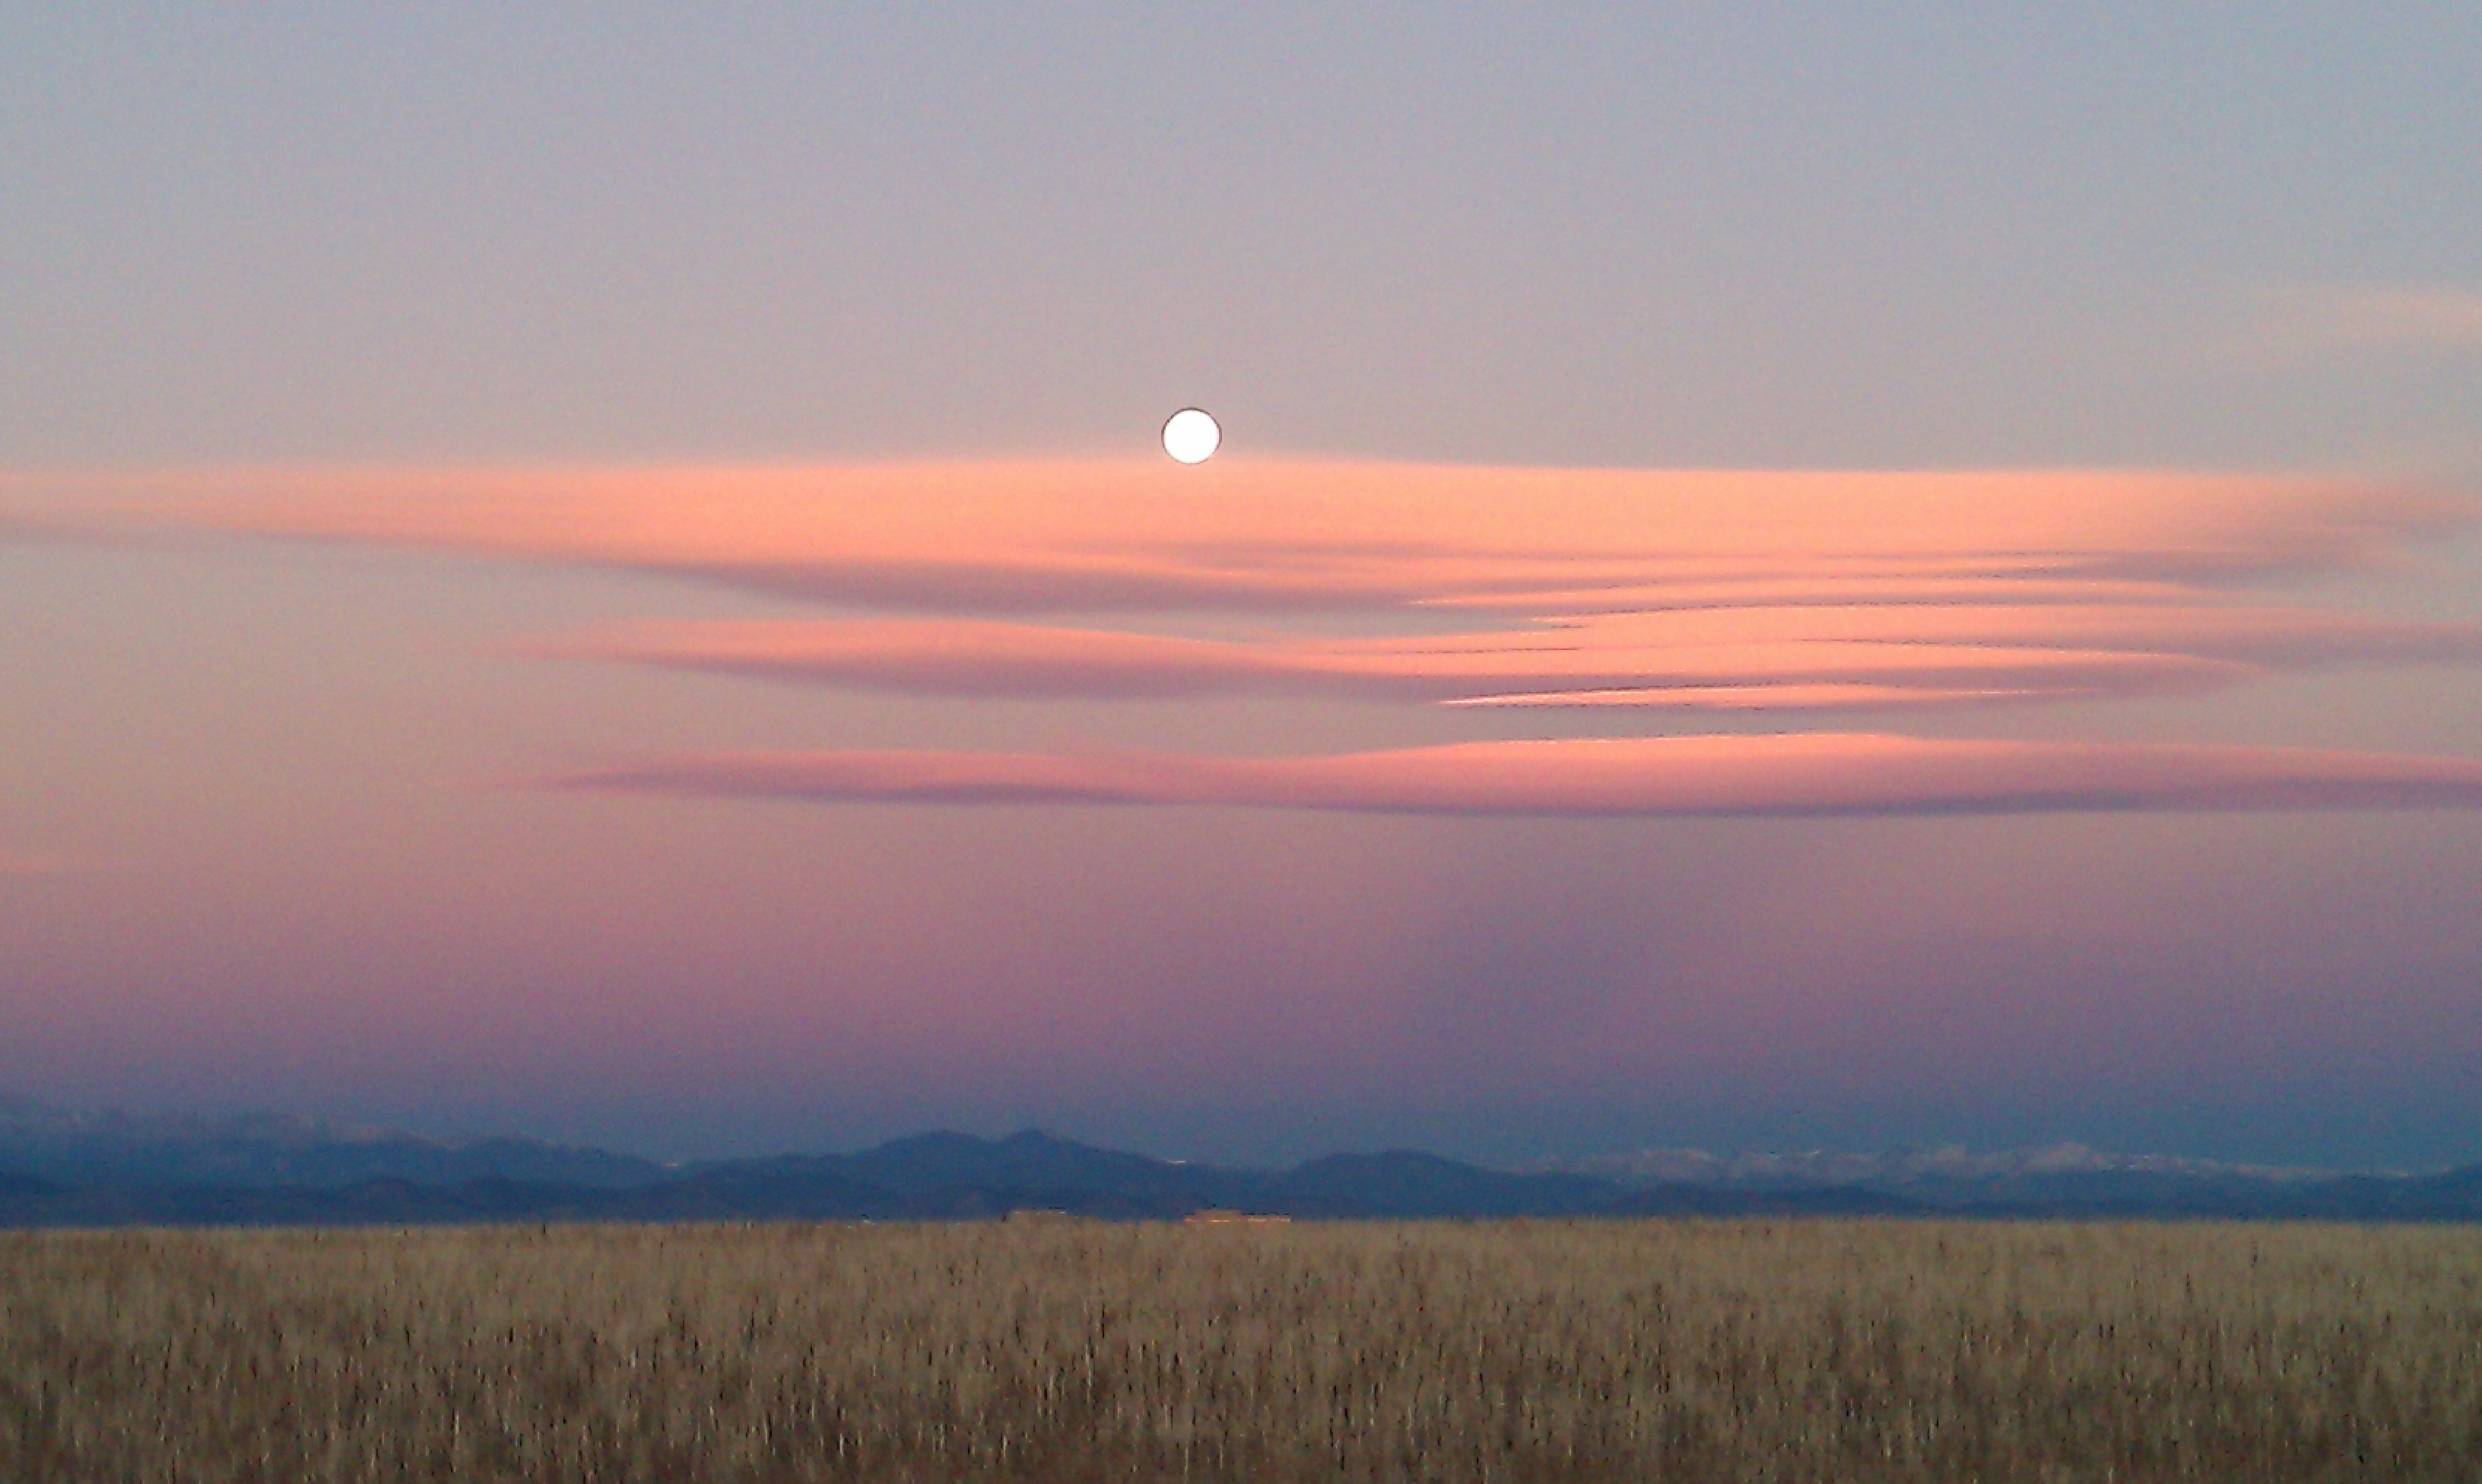 The setting moon over clouds